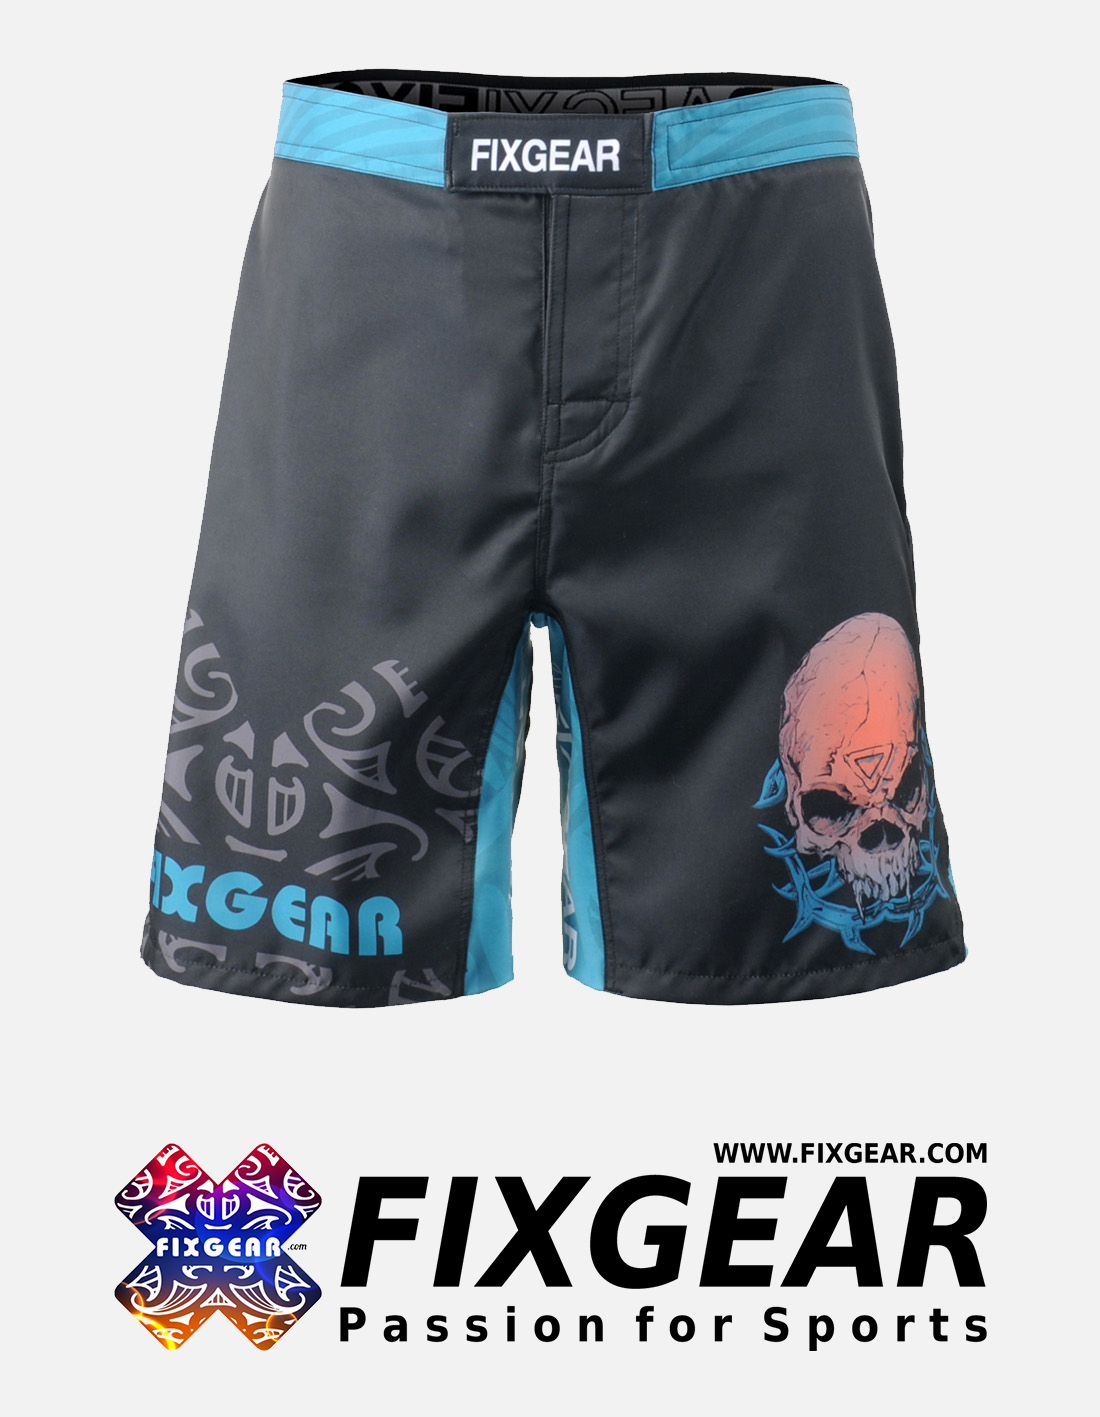 FIXGEAR FMS-74 Training Shorts